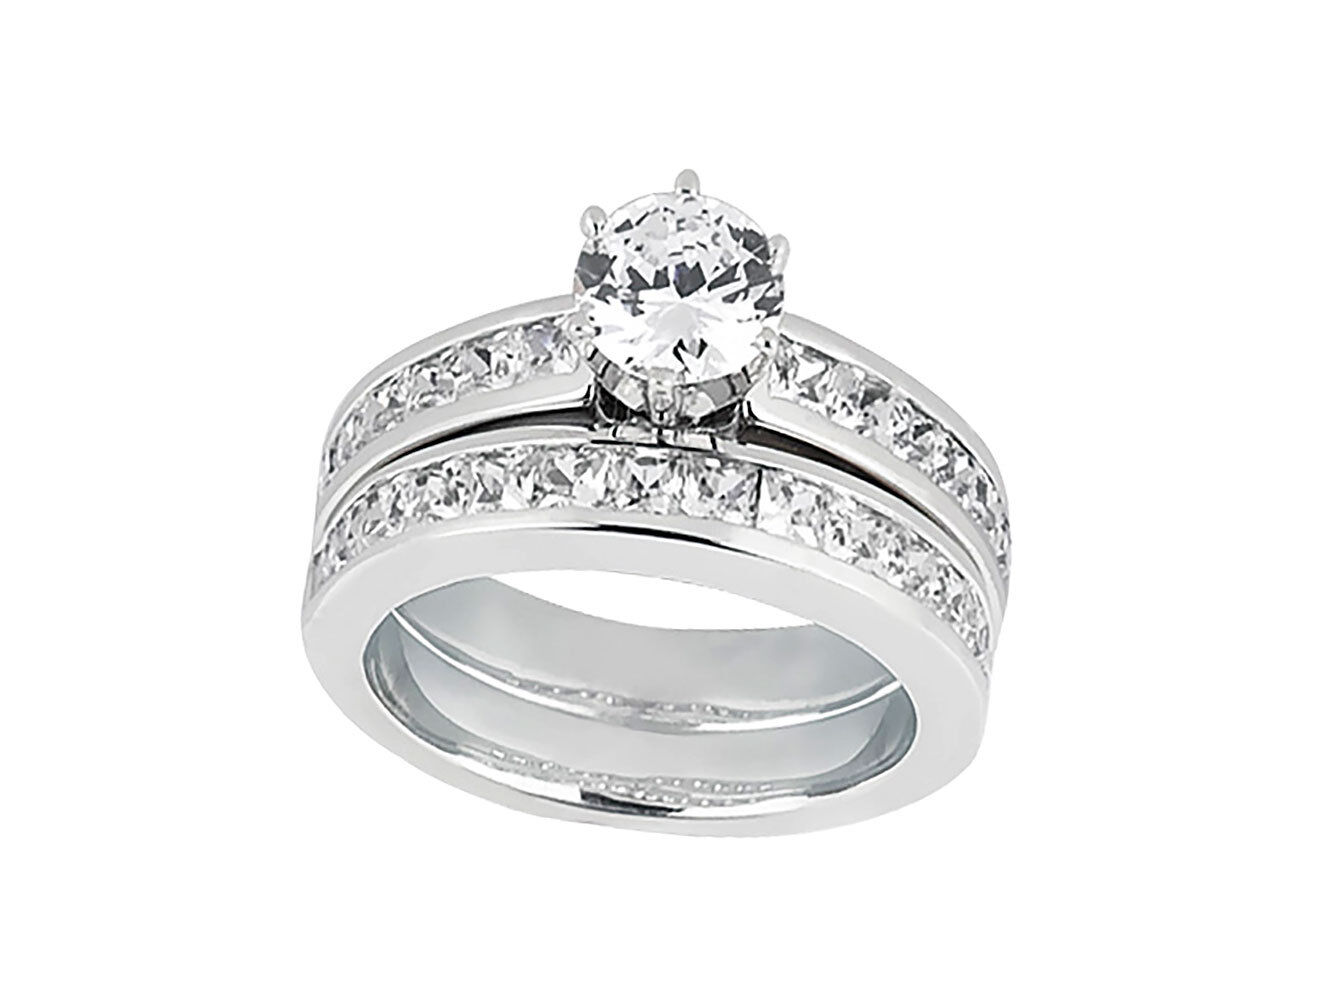 Genuine 1.75Ct Round Princess Diamond Engagement Ring Set Solid 10k gold GH I1